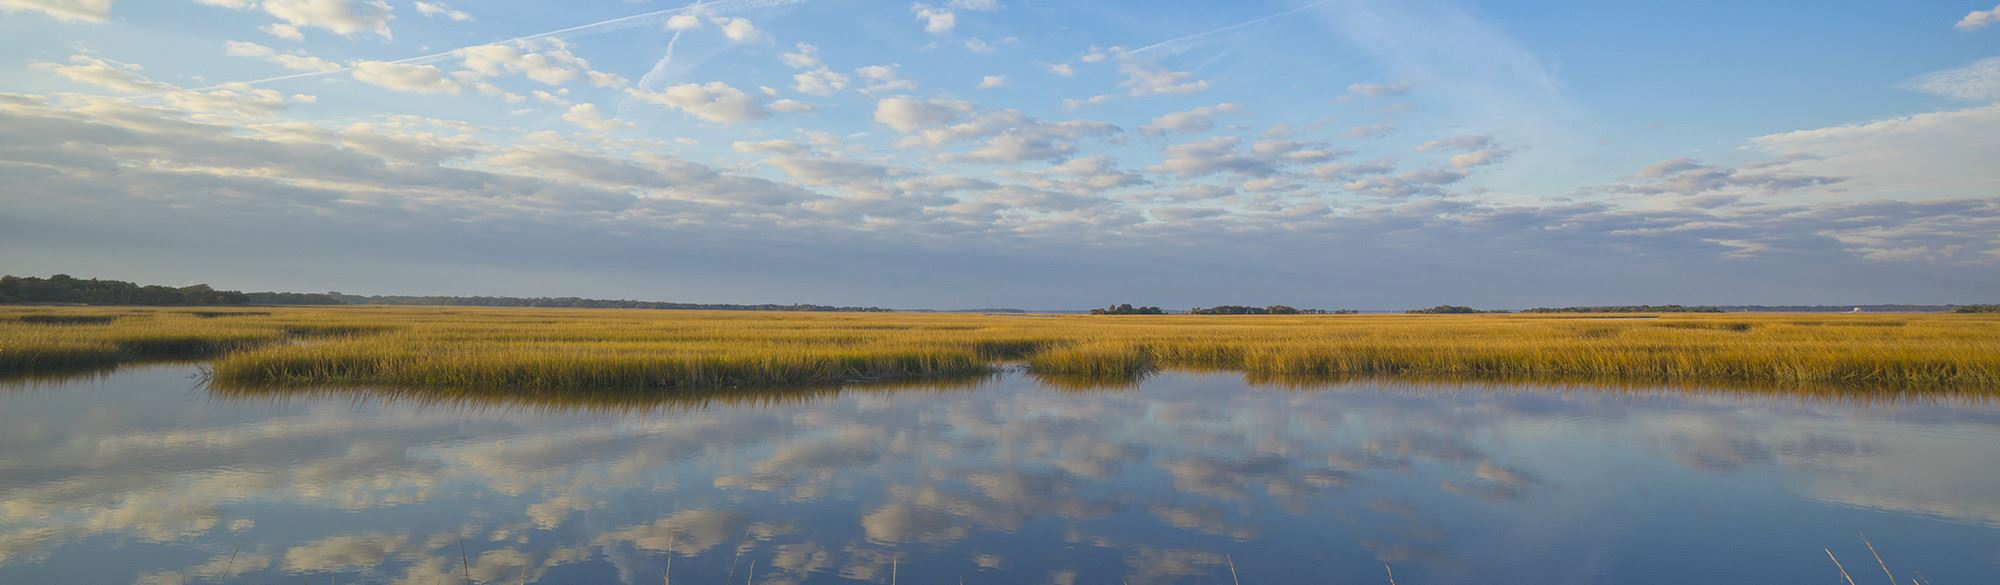 A view of watery marshes with the sky reflecting in the water on Cumberland Island